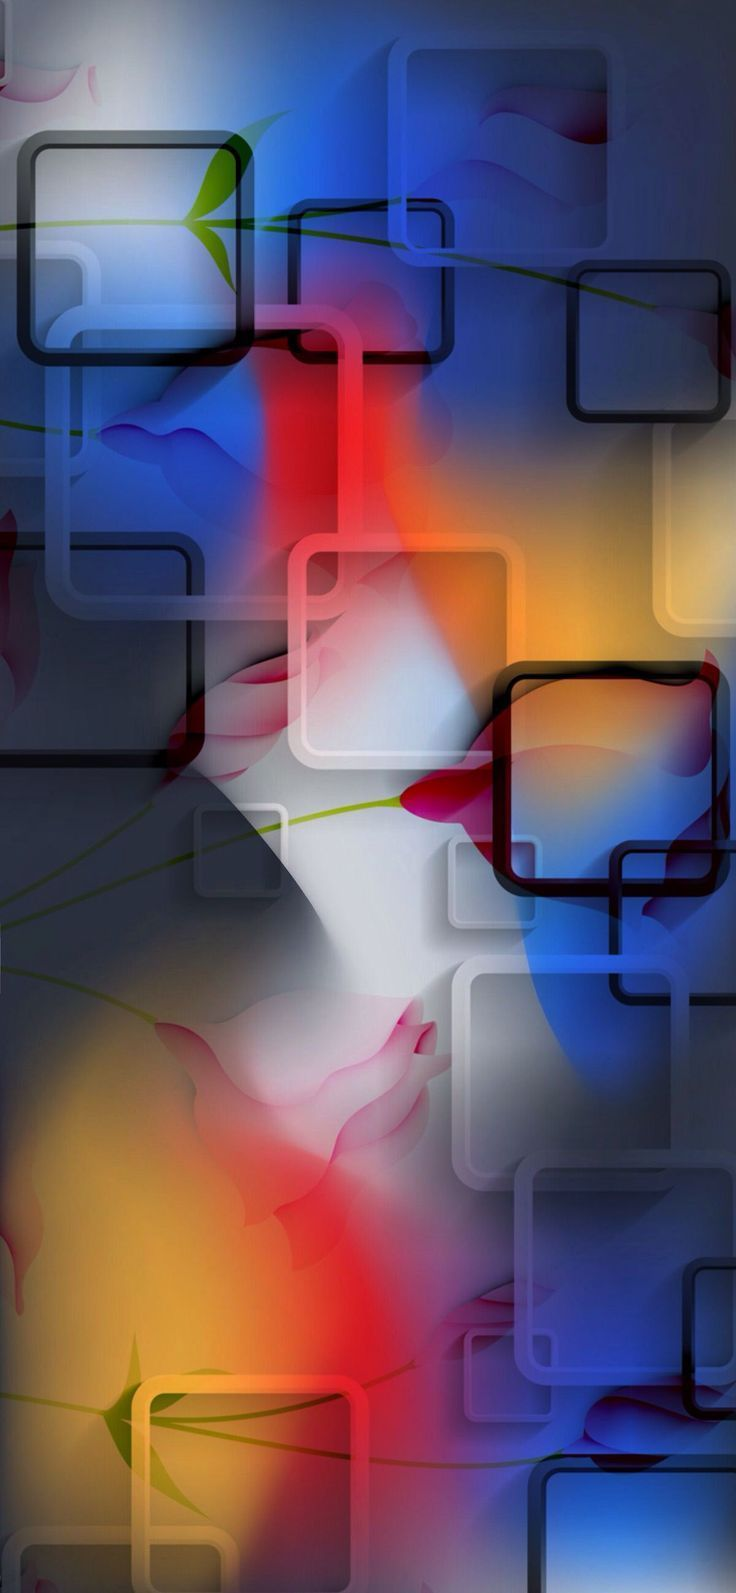 Abstract Hd Wallpapers 650981321117559275 Decent Wallpapers Hd Wallpaper Android Android Wallpaper